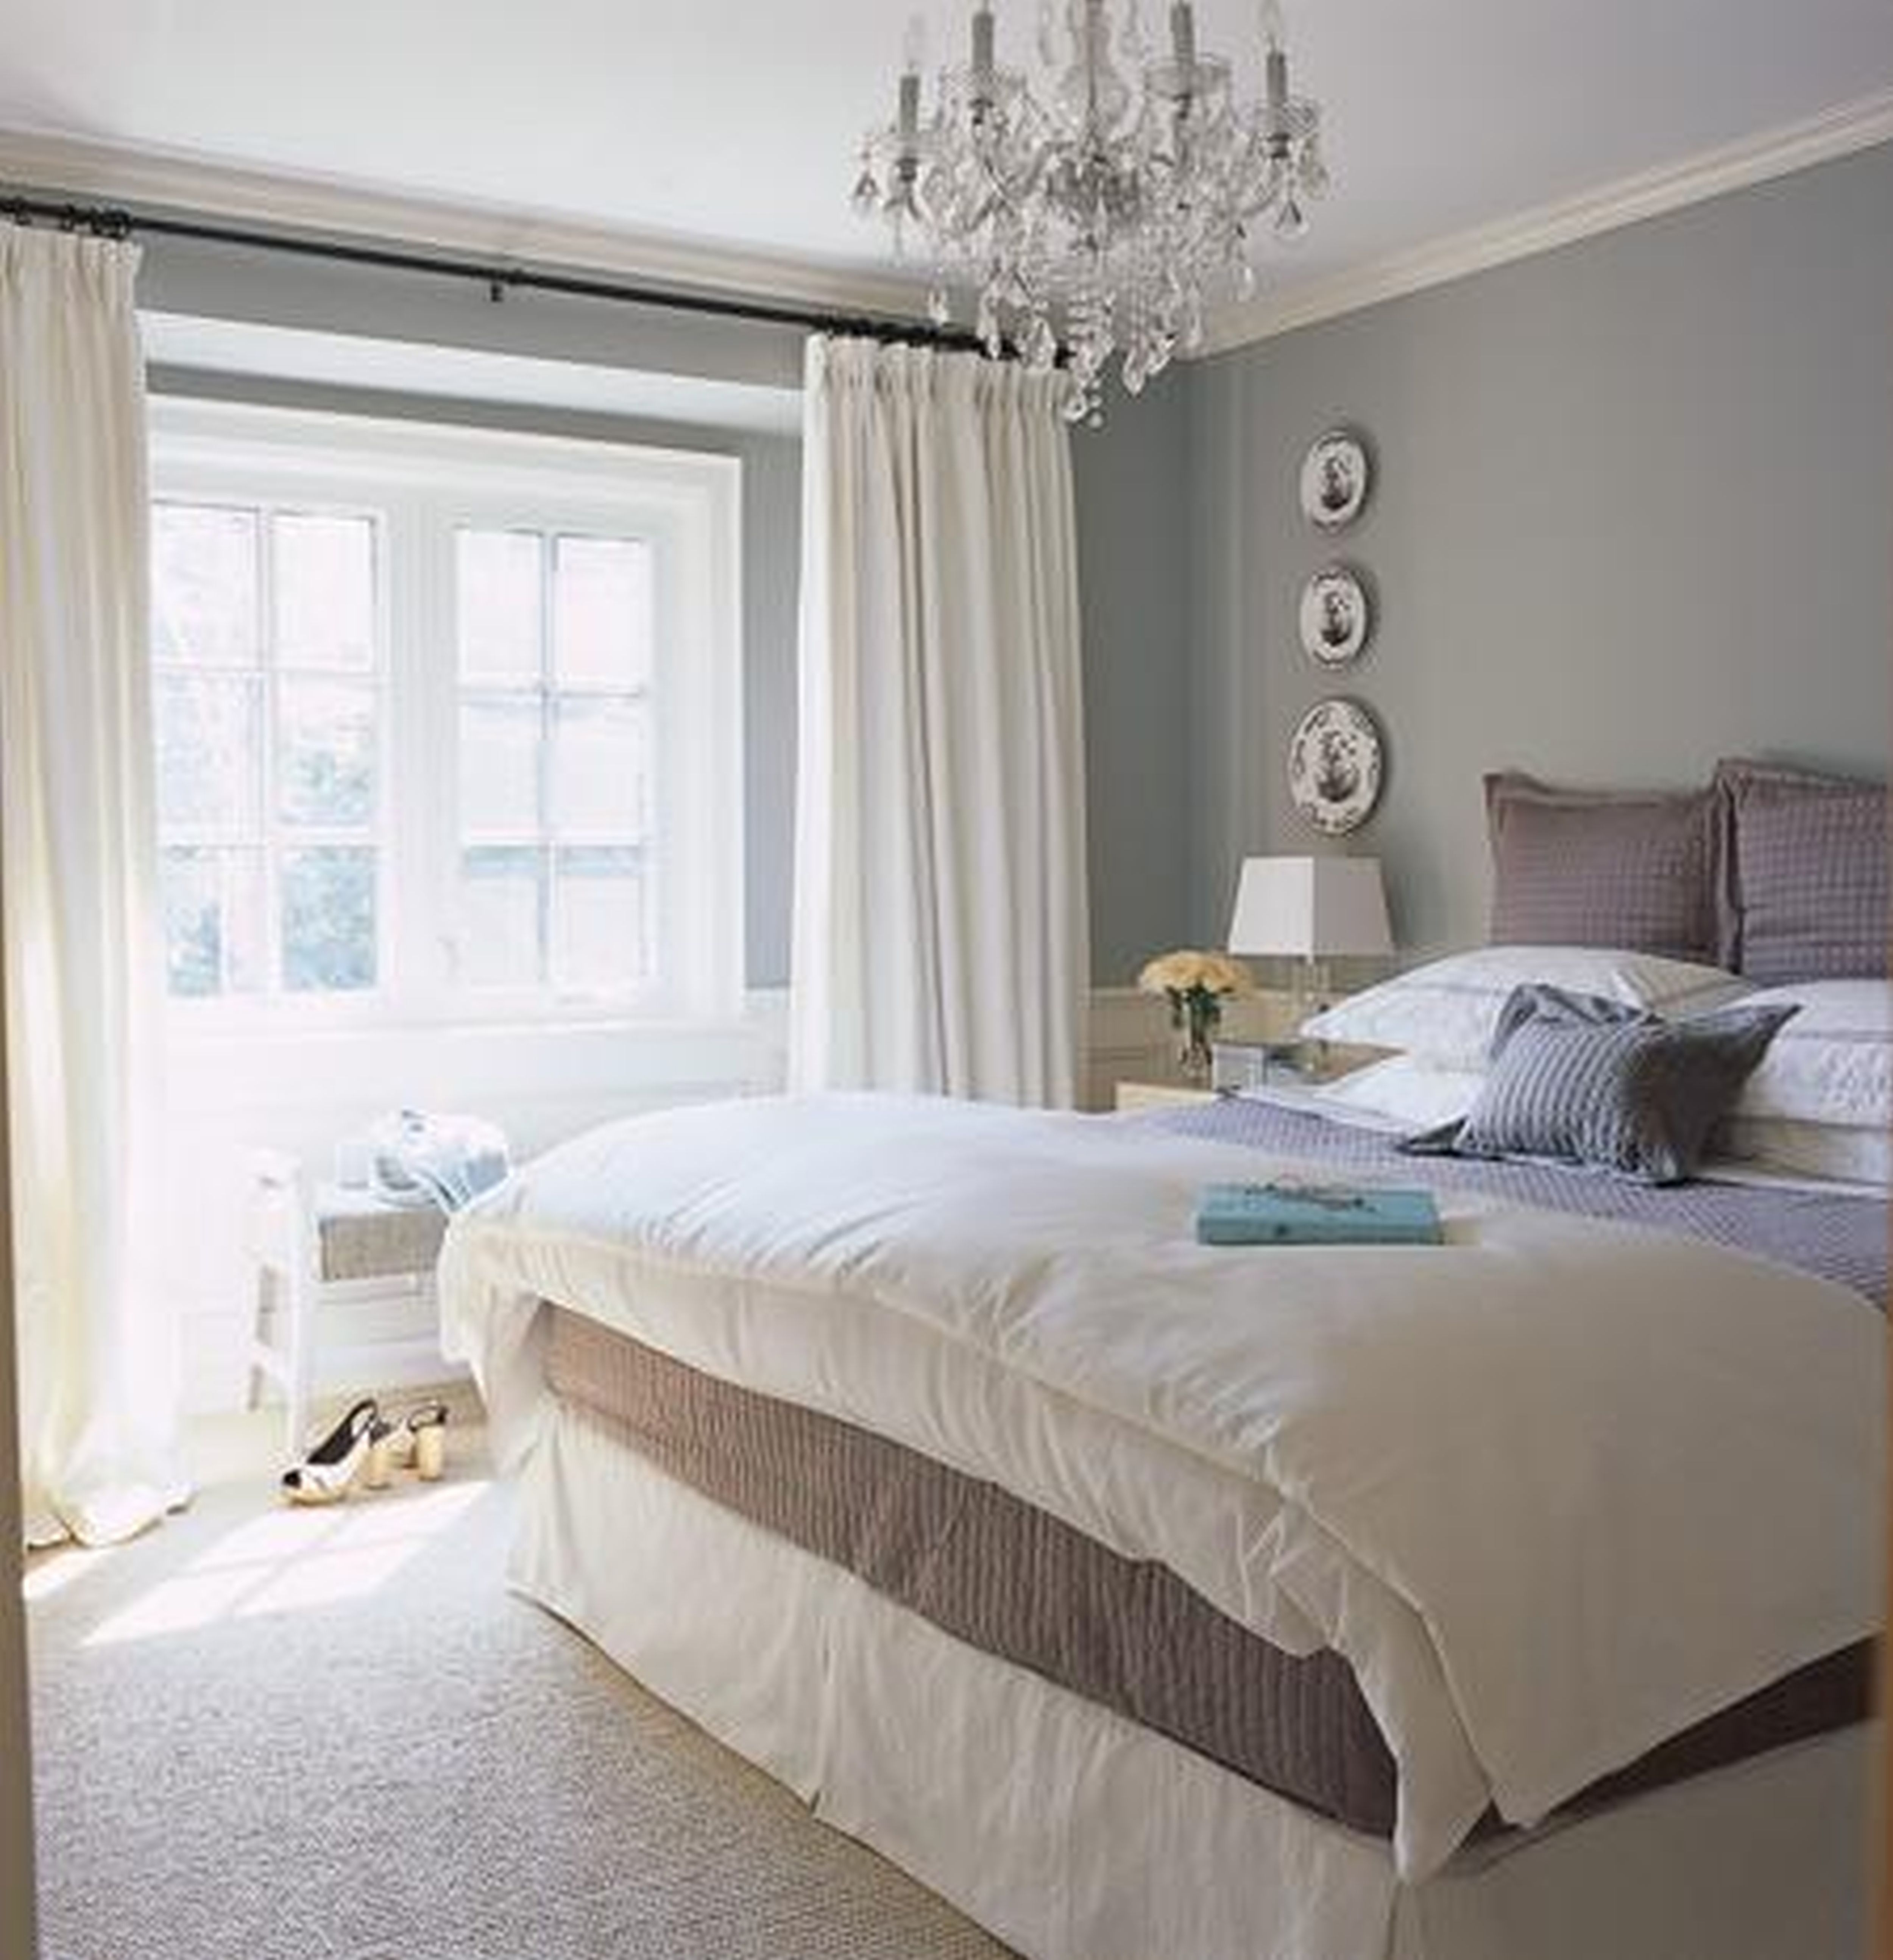 Design ideas for a small bedroom - Lydia's interiors on Small Bedroom Ideas  id=30880